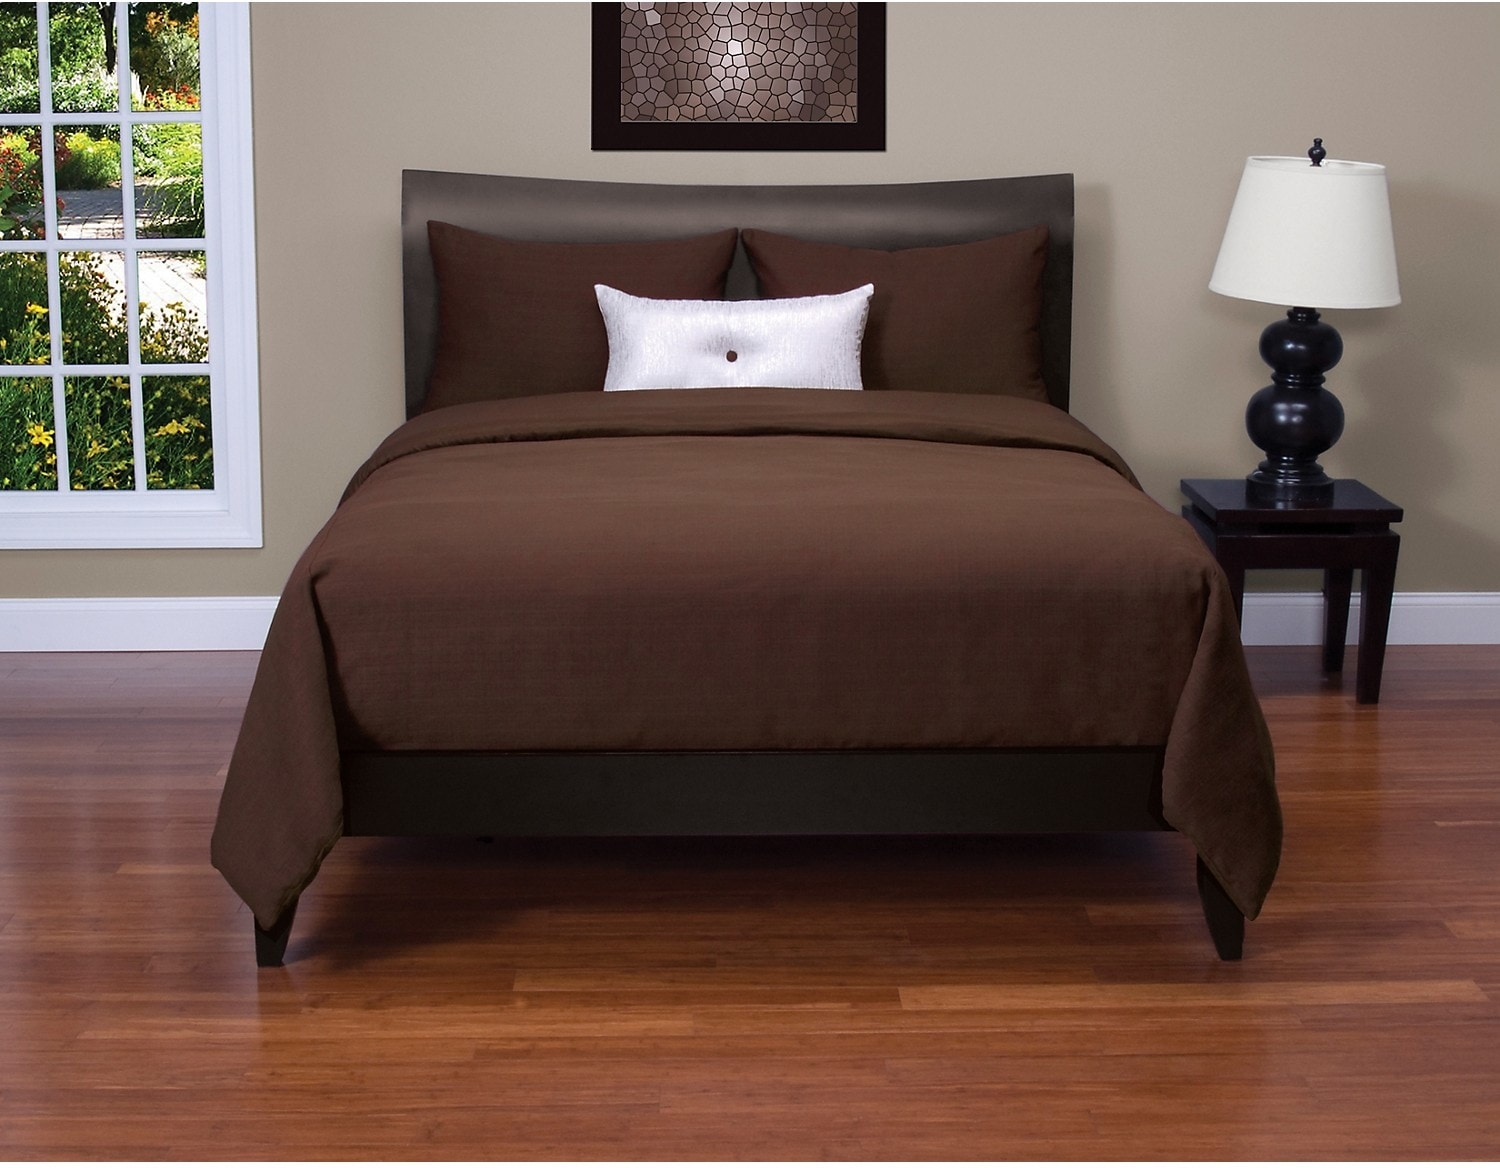 Mattresses and Bedding - Belfast Chocolate 3 Piece Twin Duvet Cover Set